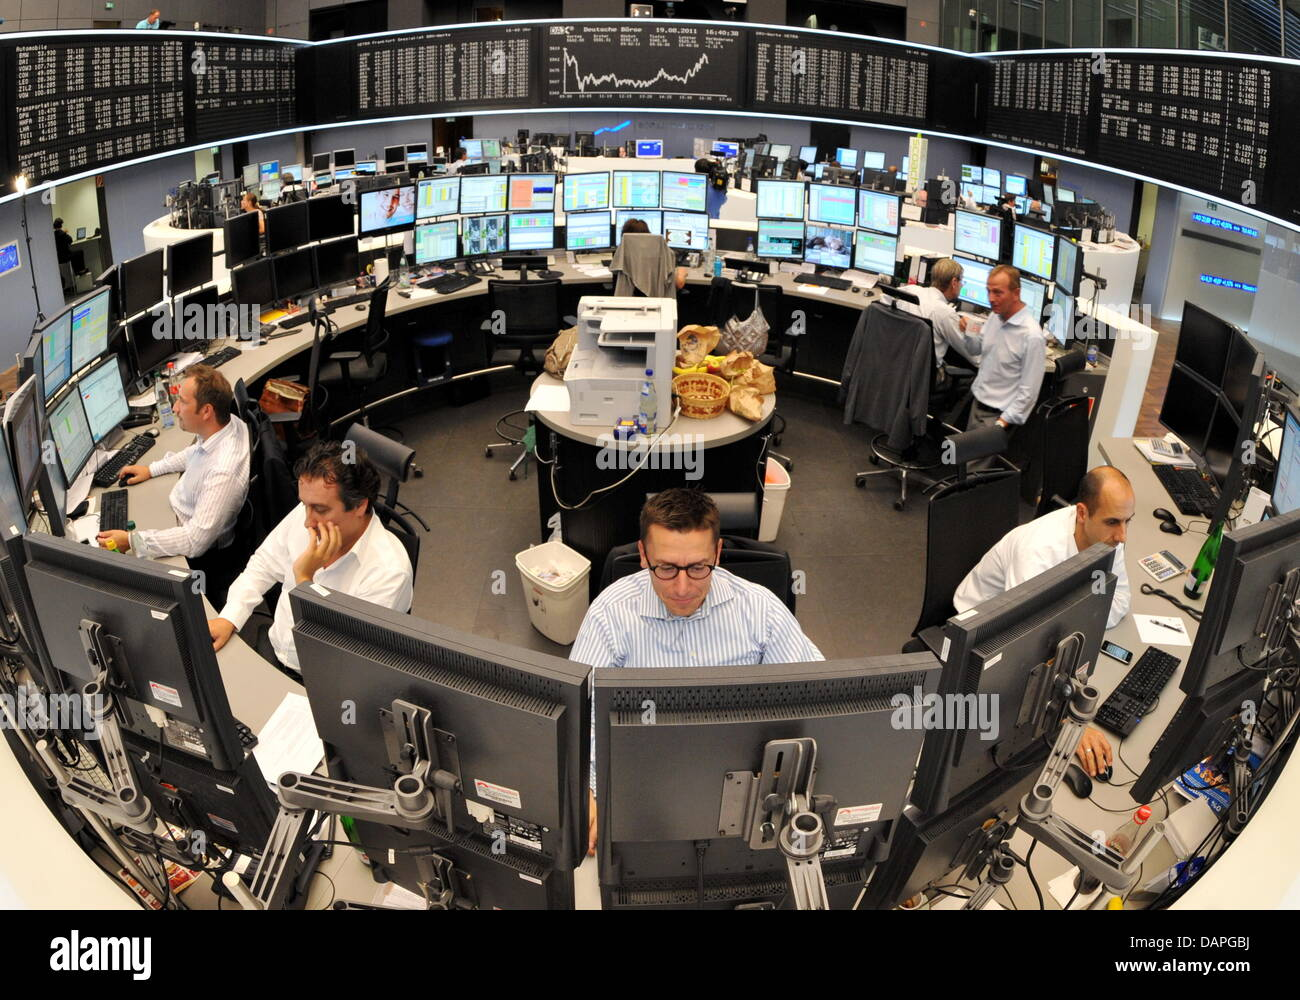 Employees look at their computer screens at the stock market in Frankfurt am Main, Germany, 19 August 2011. - Stock Image